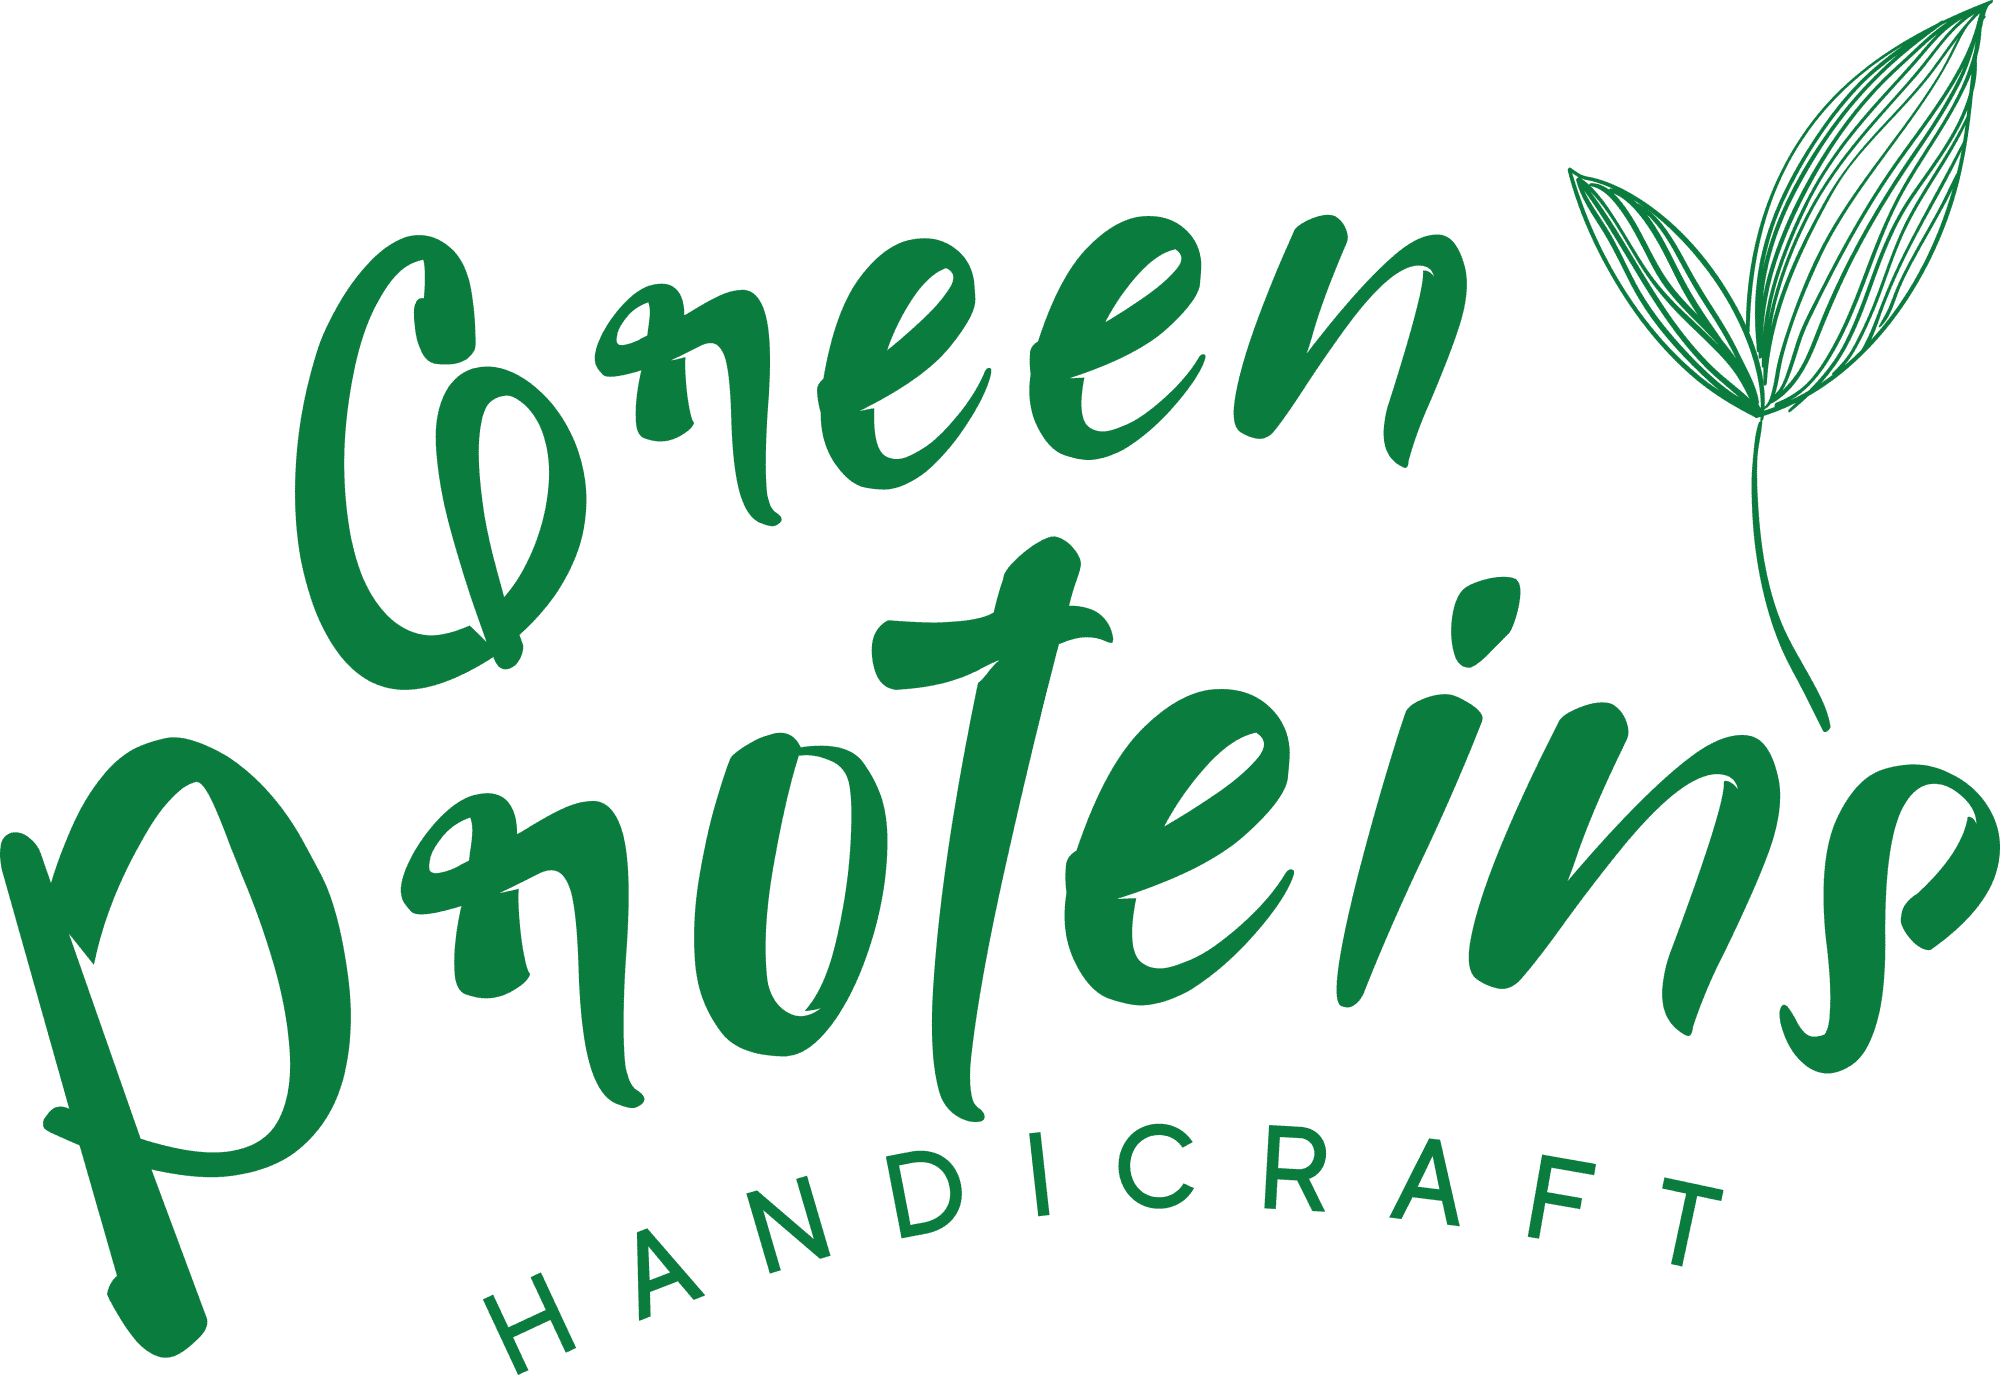 GREEN PROTEINS